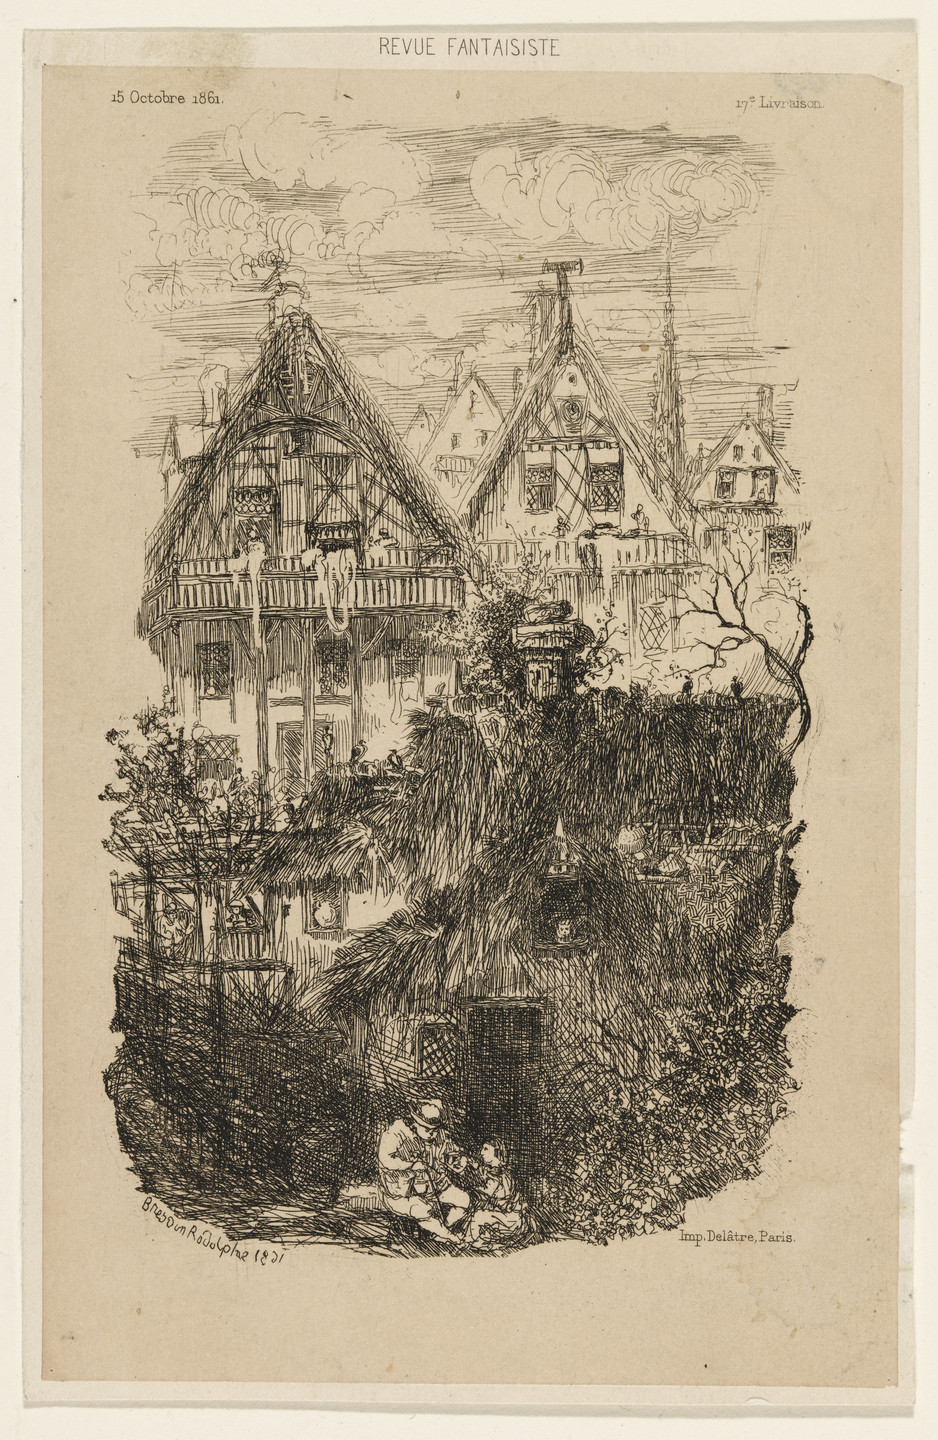 Rodolphe Bresdin. The Wooden House. 1861